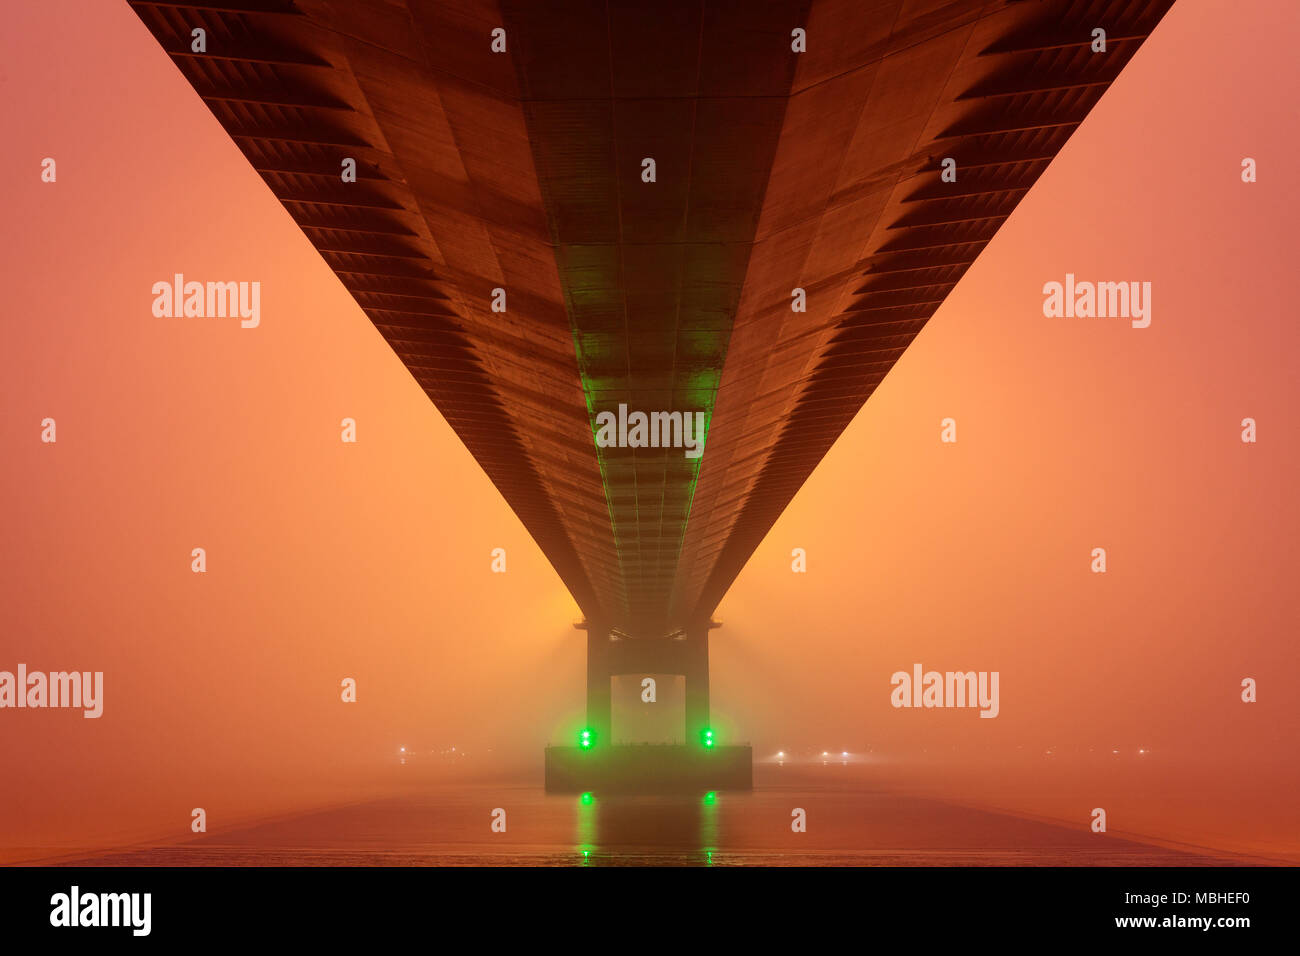 Barton-upon-Humber, North Lincolnshire, UK. 10th April 2018. UK Weather: The Humber Bridge shrouded in mist. Credit: LEE BEEL/Alamy Live News - Stock Image